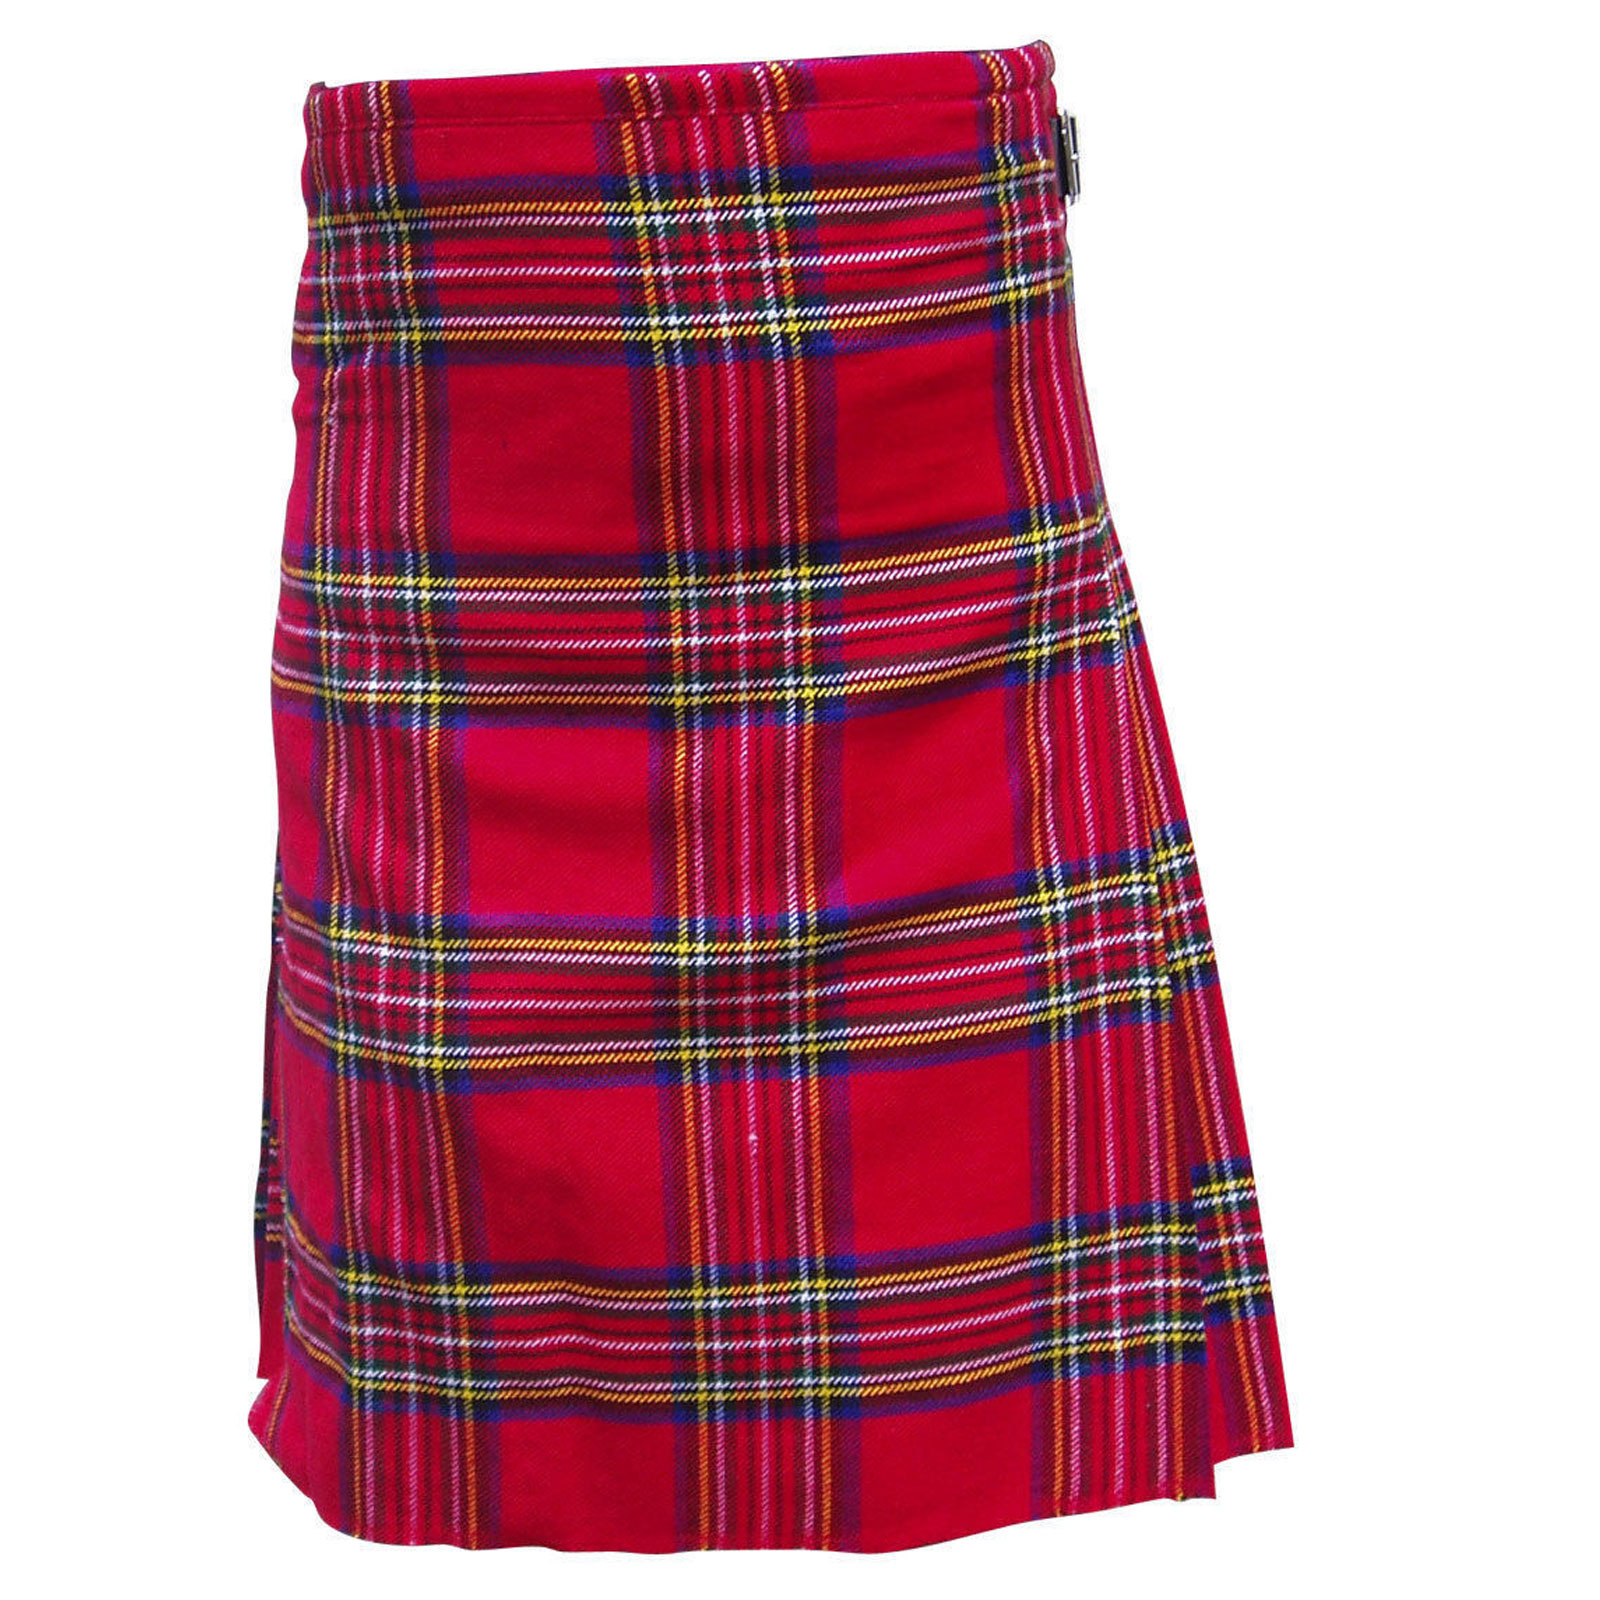 scottish-5-yard-acrylic-highland-casual-kilt-royale-stewart